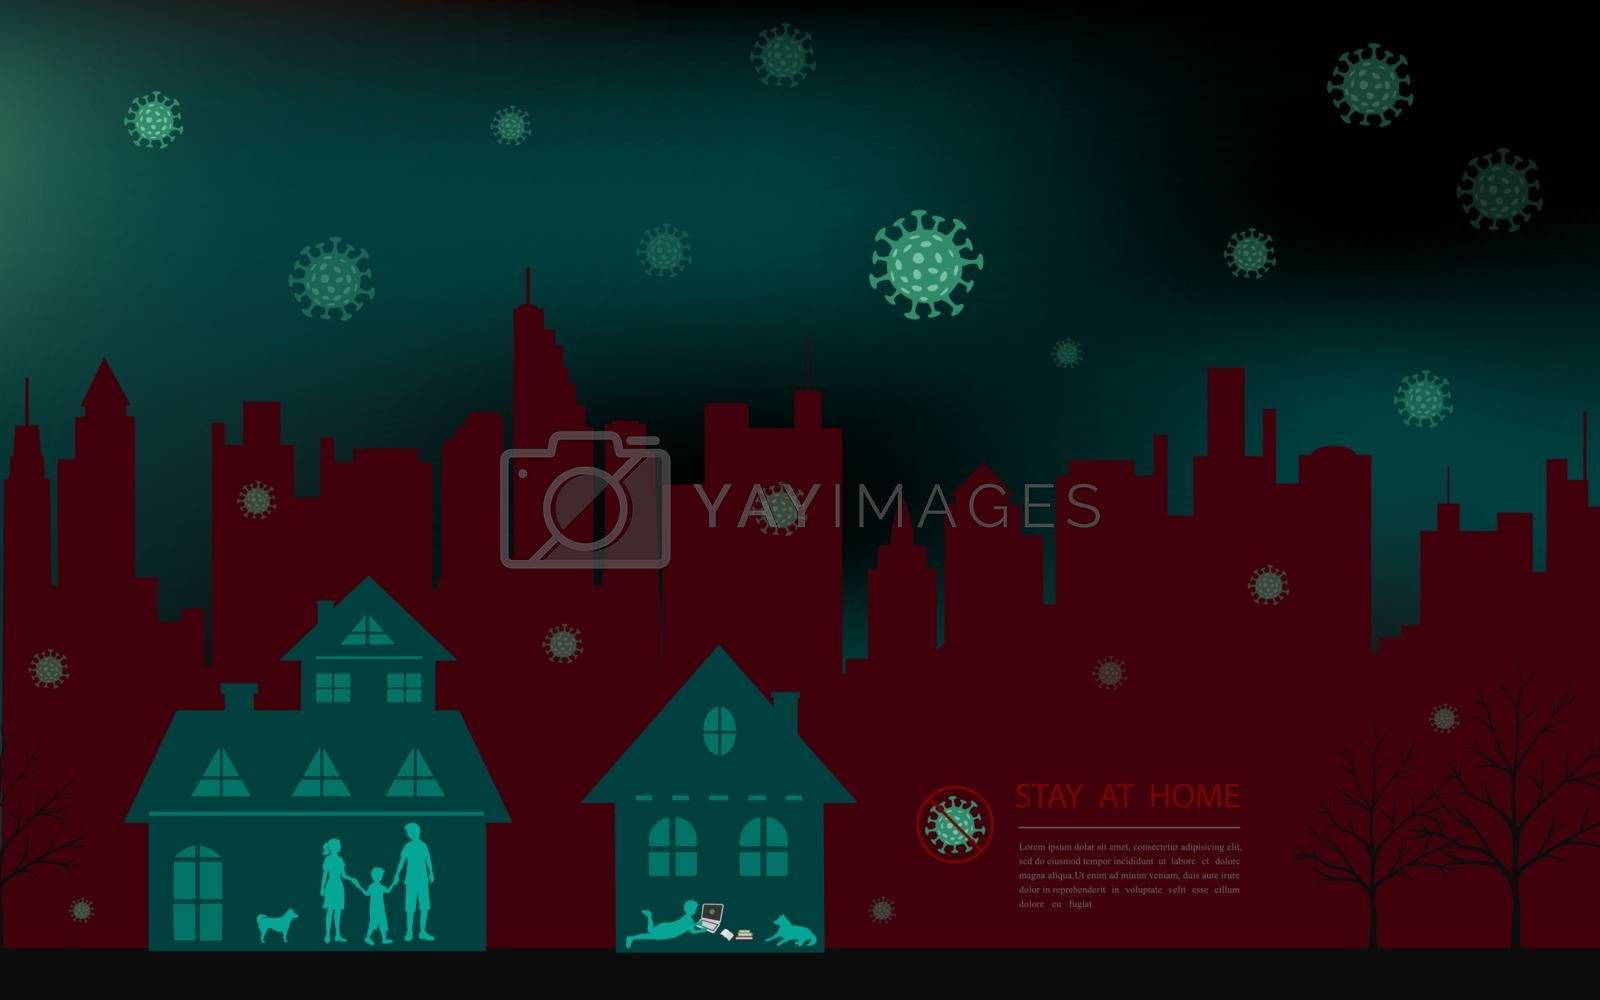 Family stay at home during outbreak of covid-19 virus concept,vector illustration